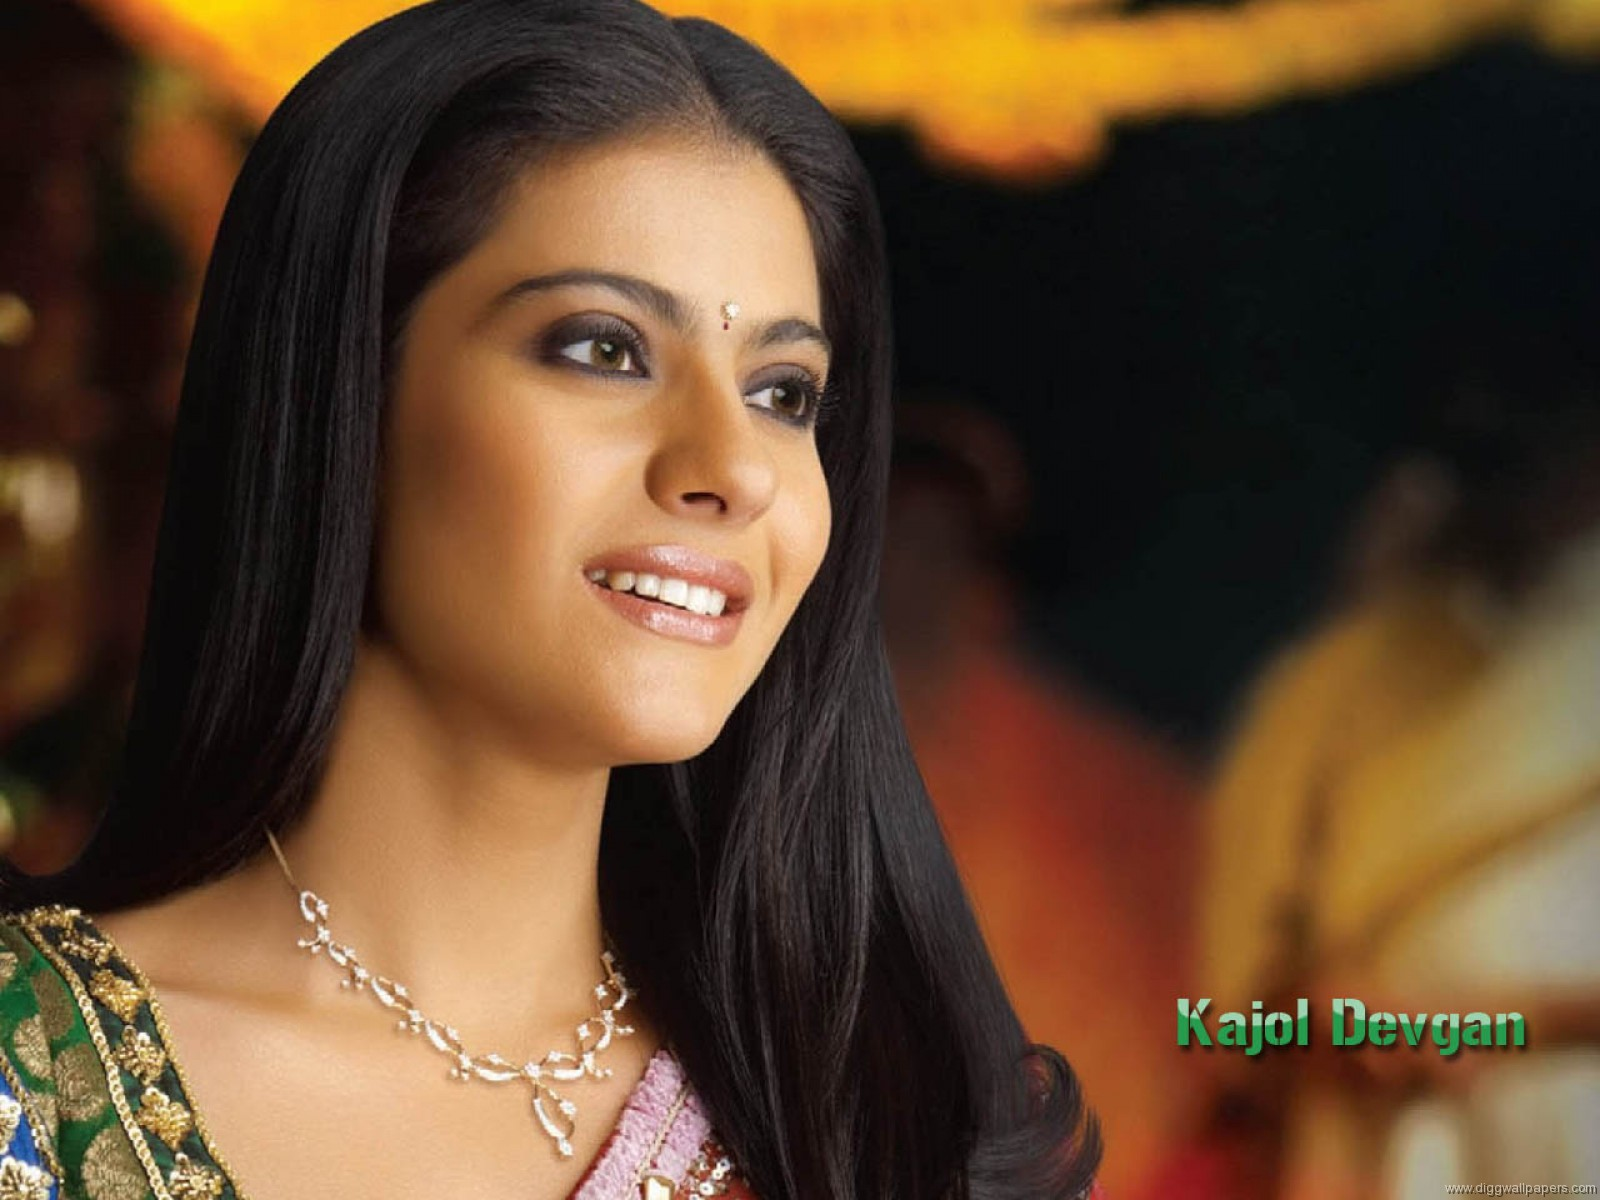 wallpaper pelho28: hd wallpaper of kajol